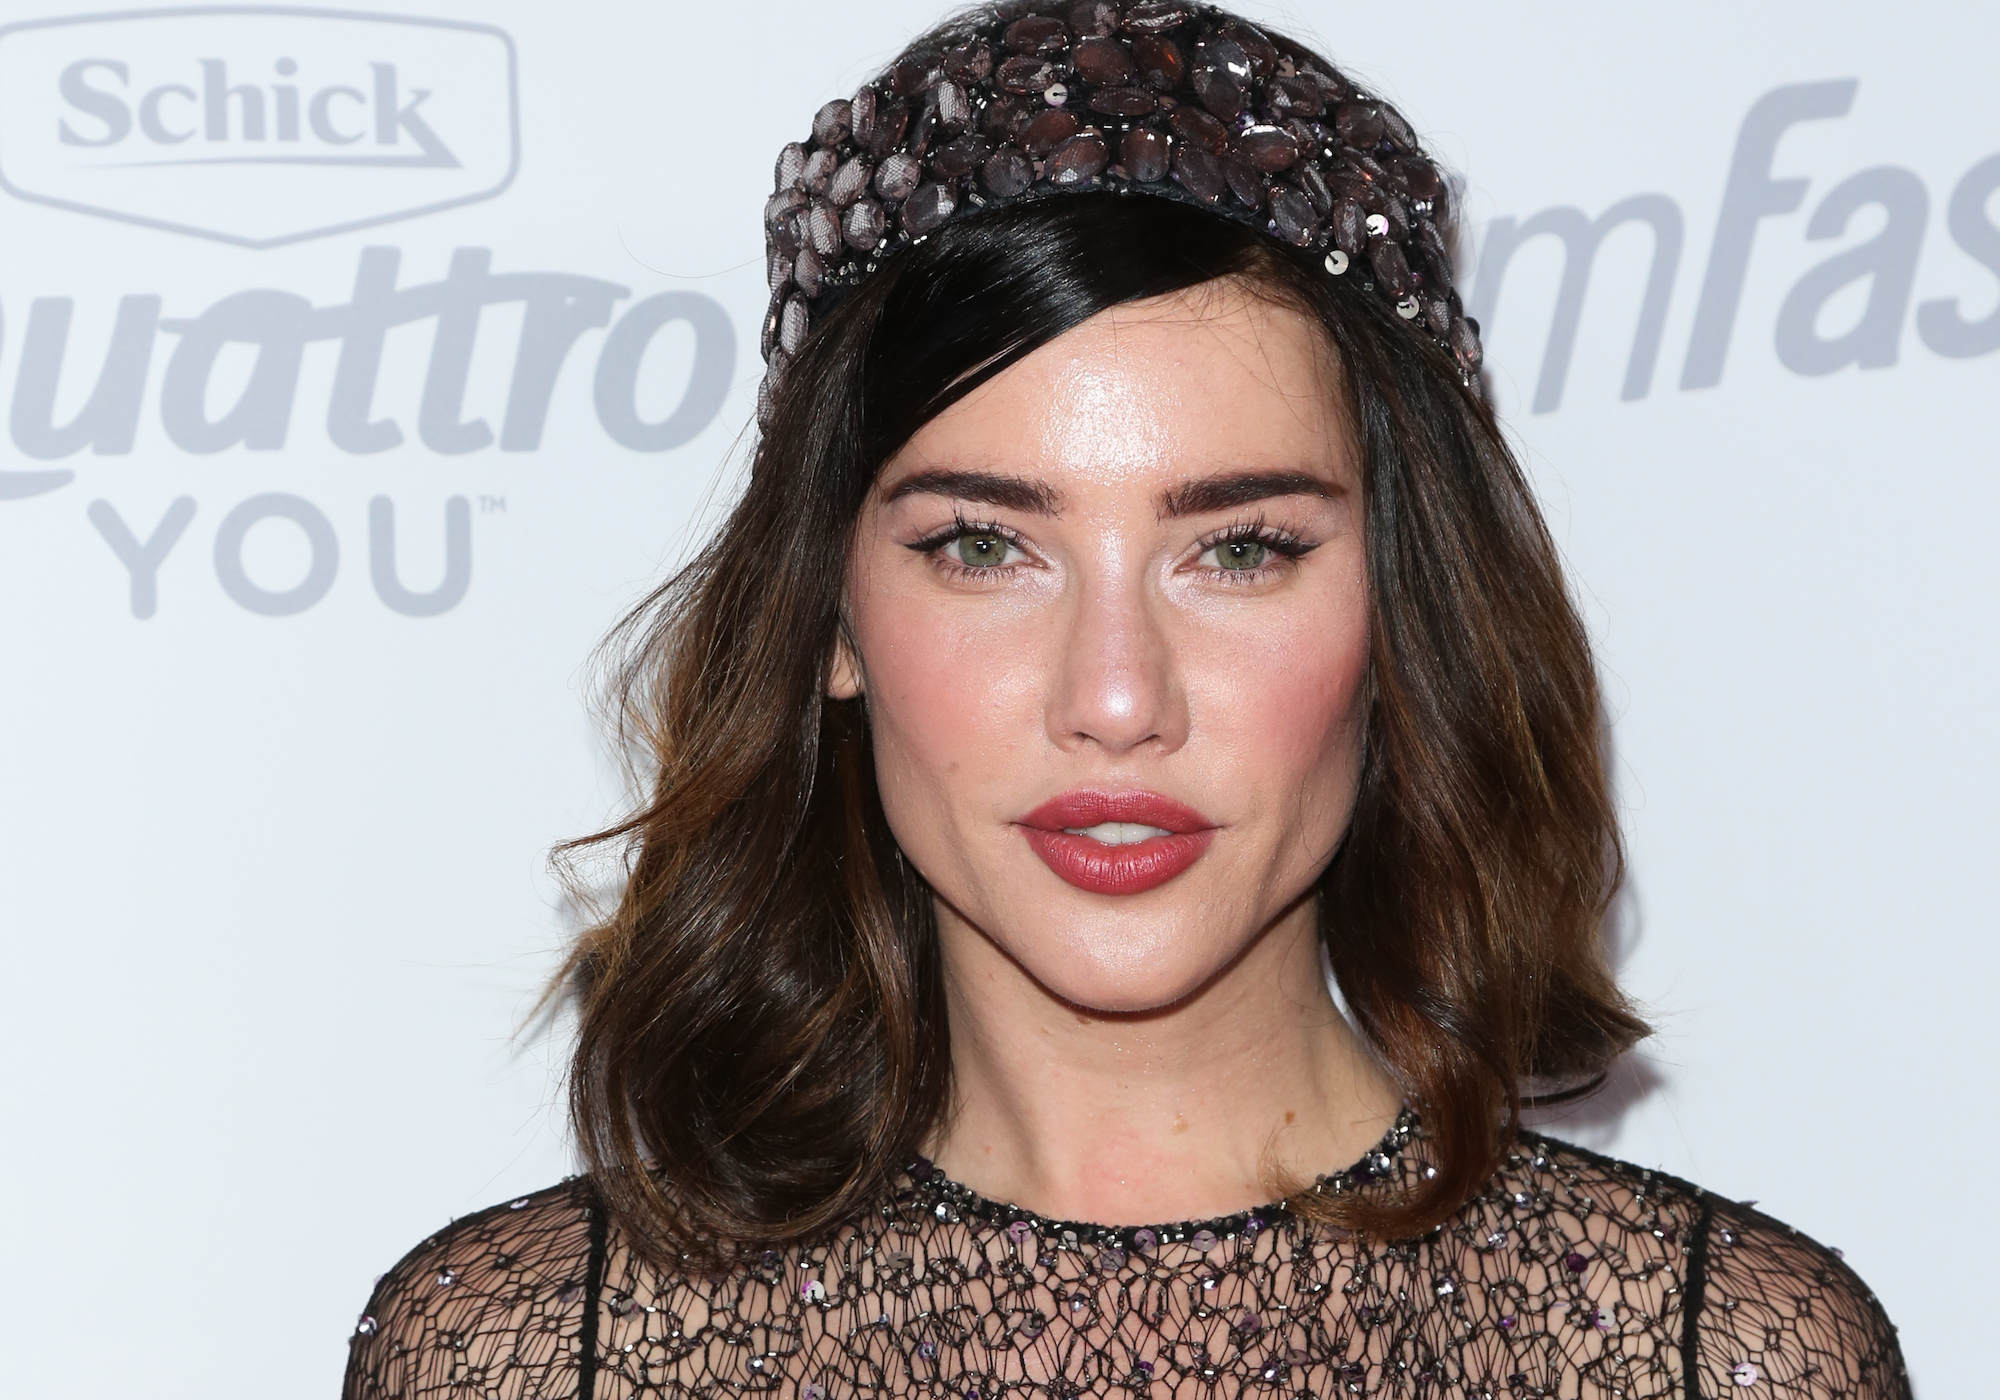 The Bold and the Beautiful': Jacqueline MacInnes Wood's Recent Performance  Has Fans Hooked